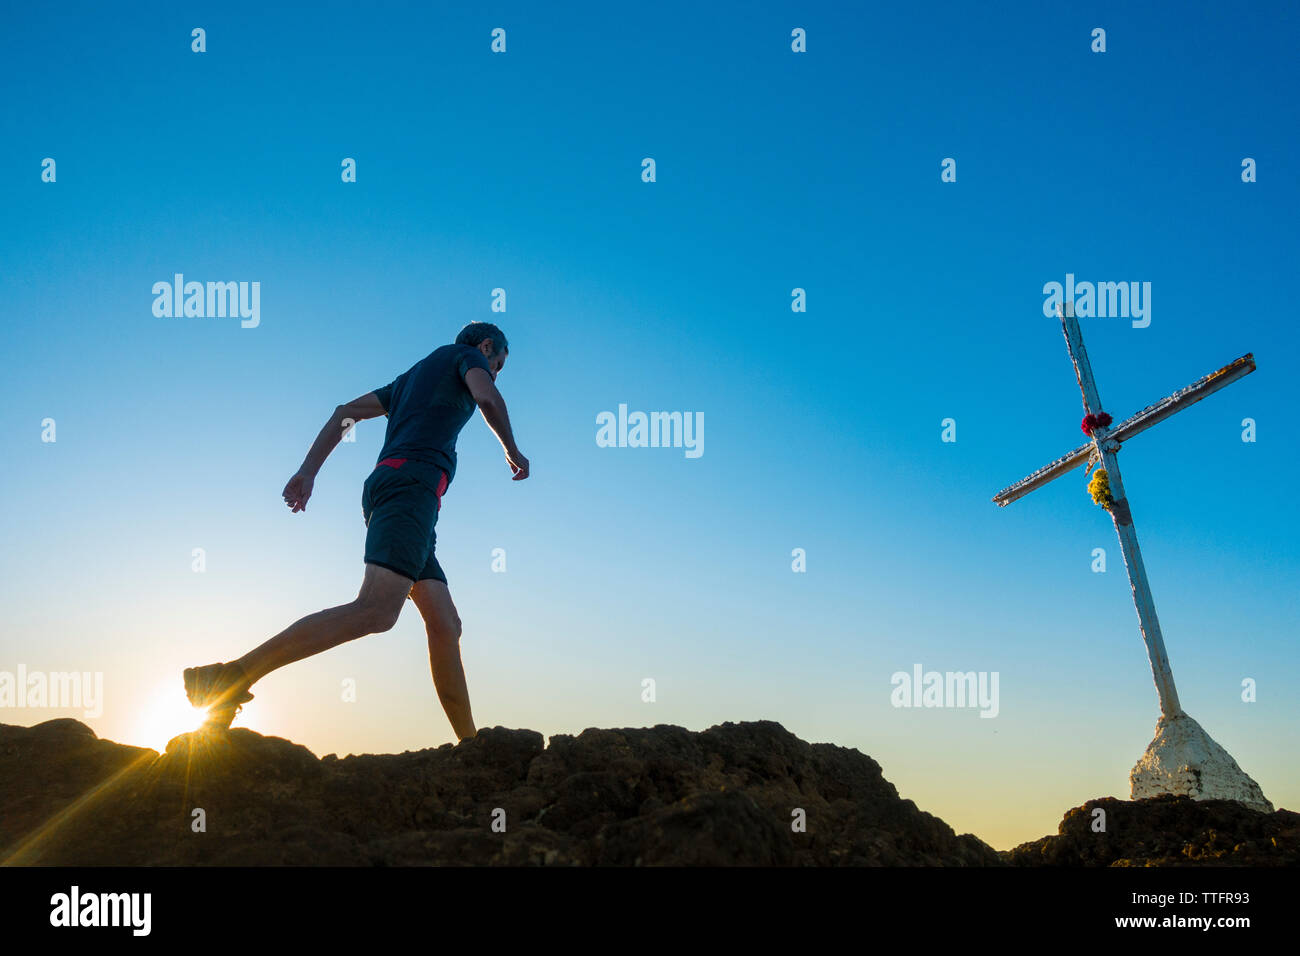 Gran Canaria, Canary Islands, Spain. 17th June 2019. Trail runner on mountain summit as the sun rises into a cloudless sky on a glorious Monday morning on Gran Canaria. Credit:Alan Dawson/Alamy Live News. - Stock Image